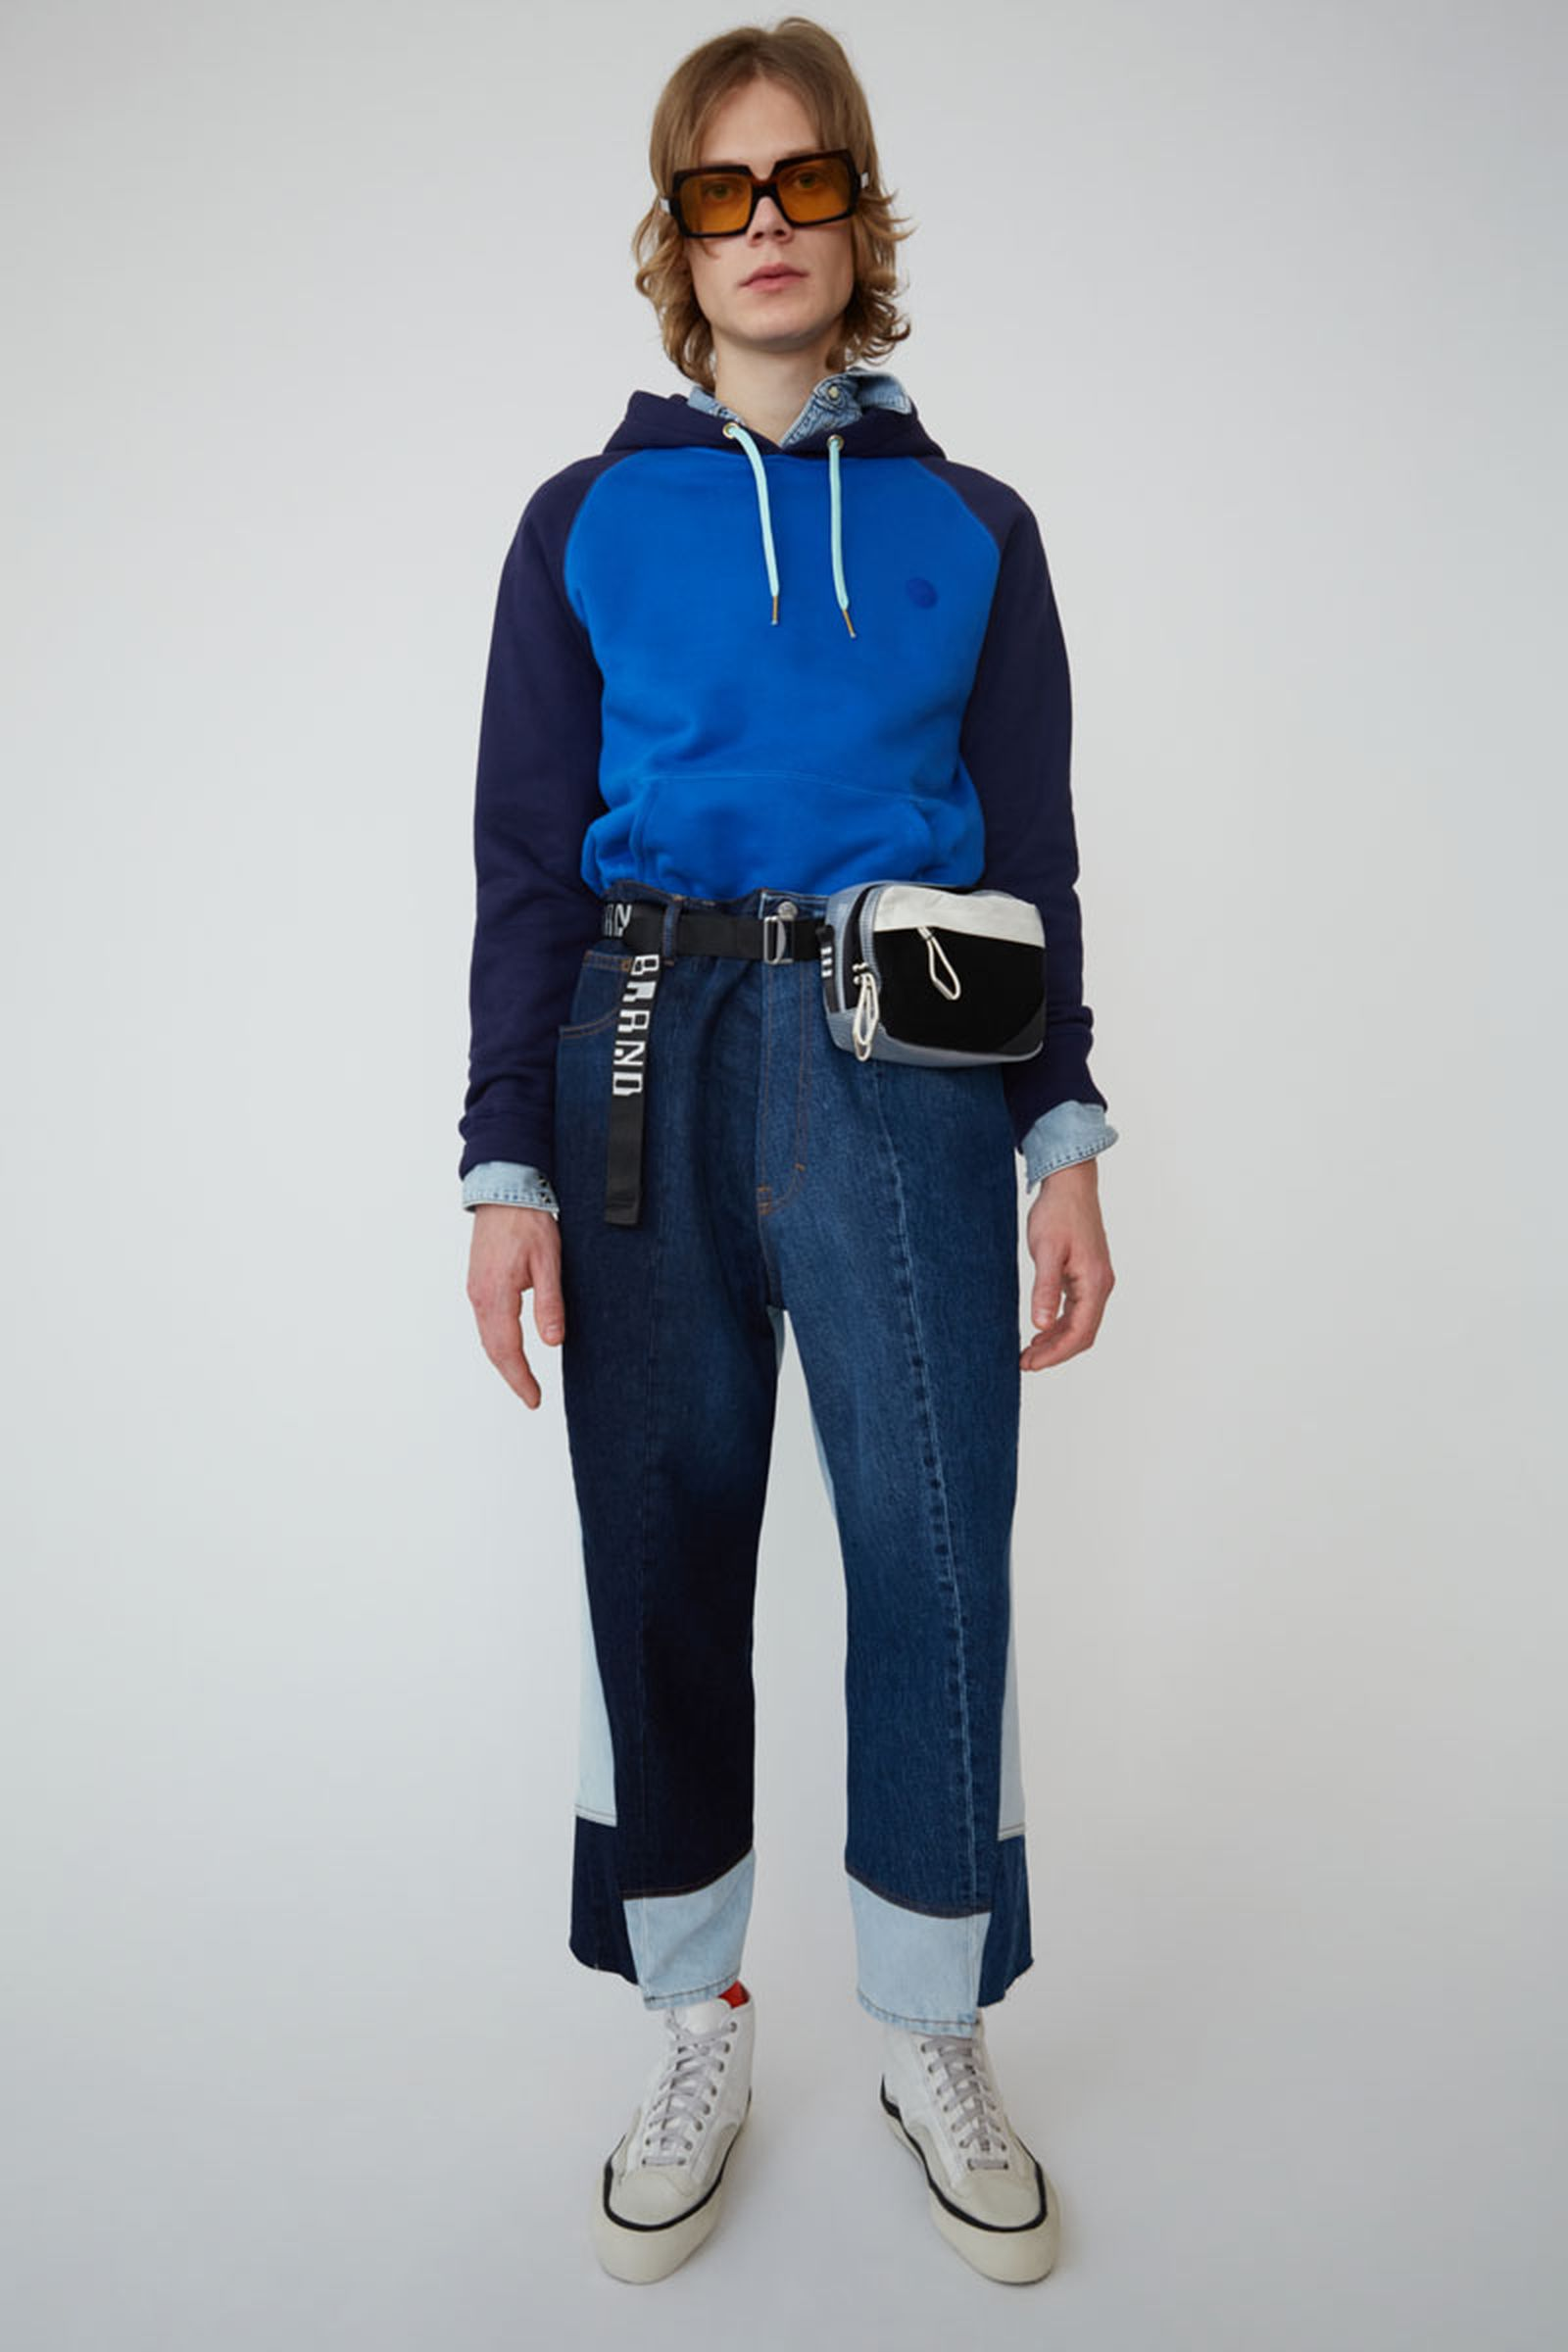 21acne studios ss19 denim collection